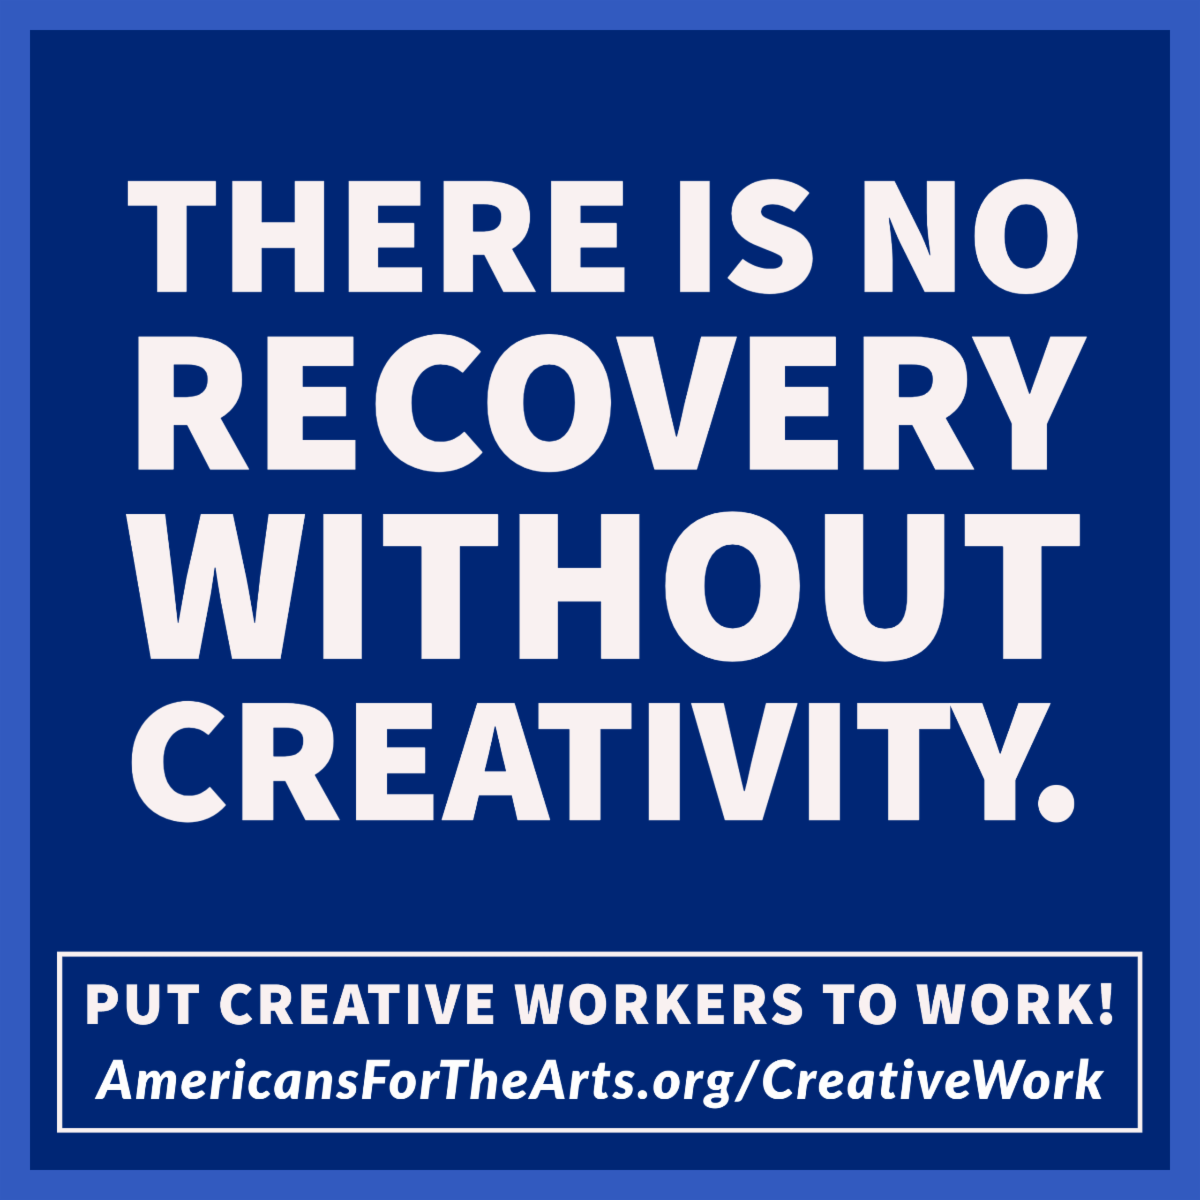 There is no recovery without creativity.